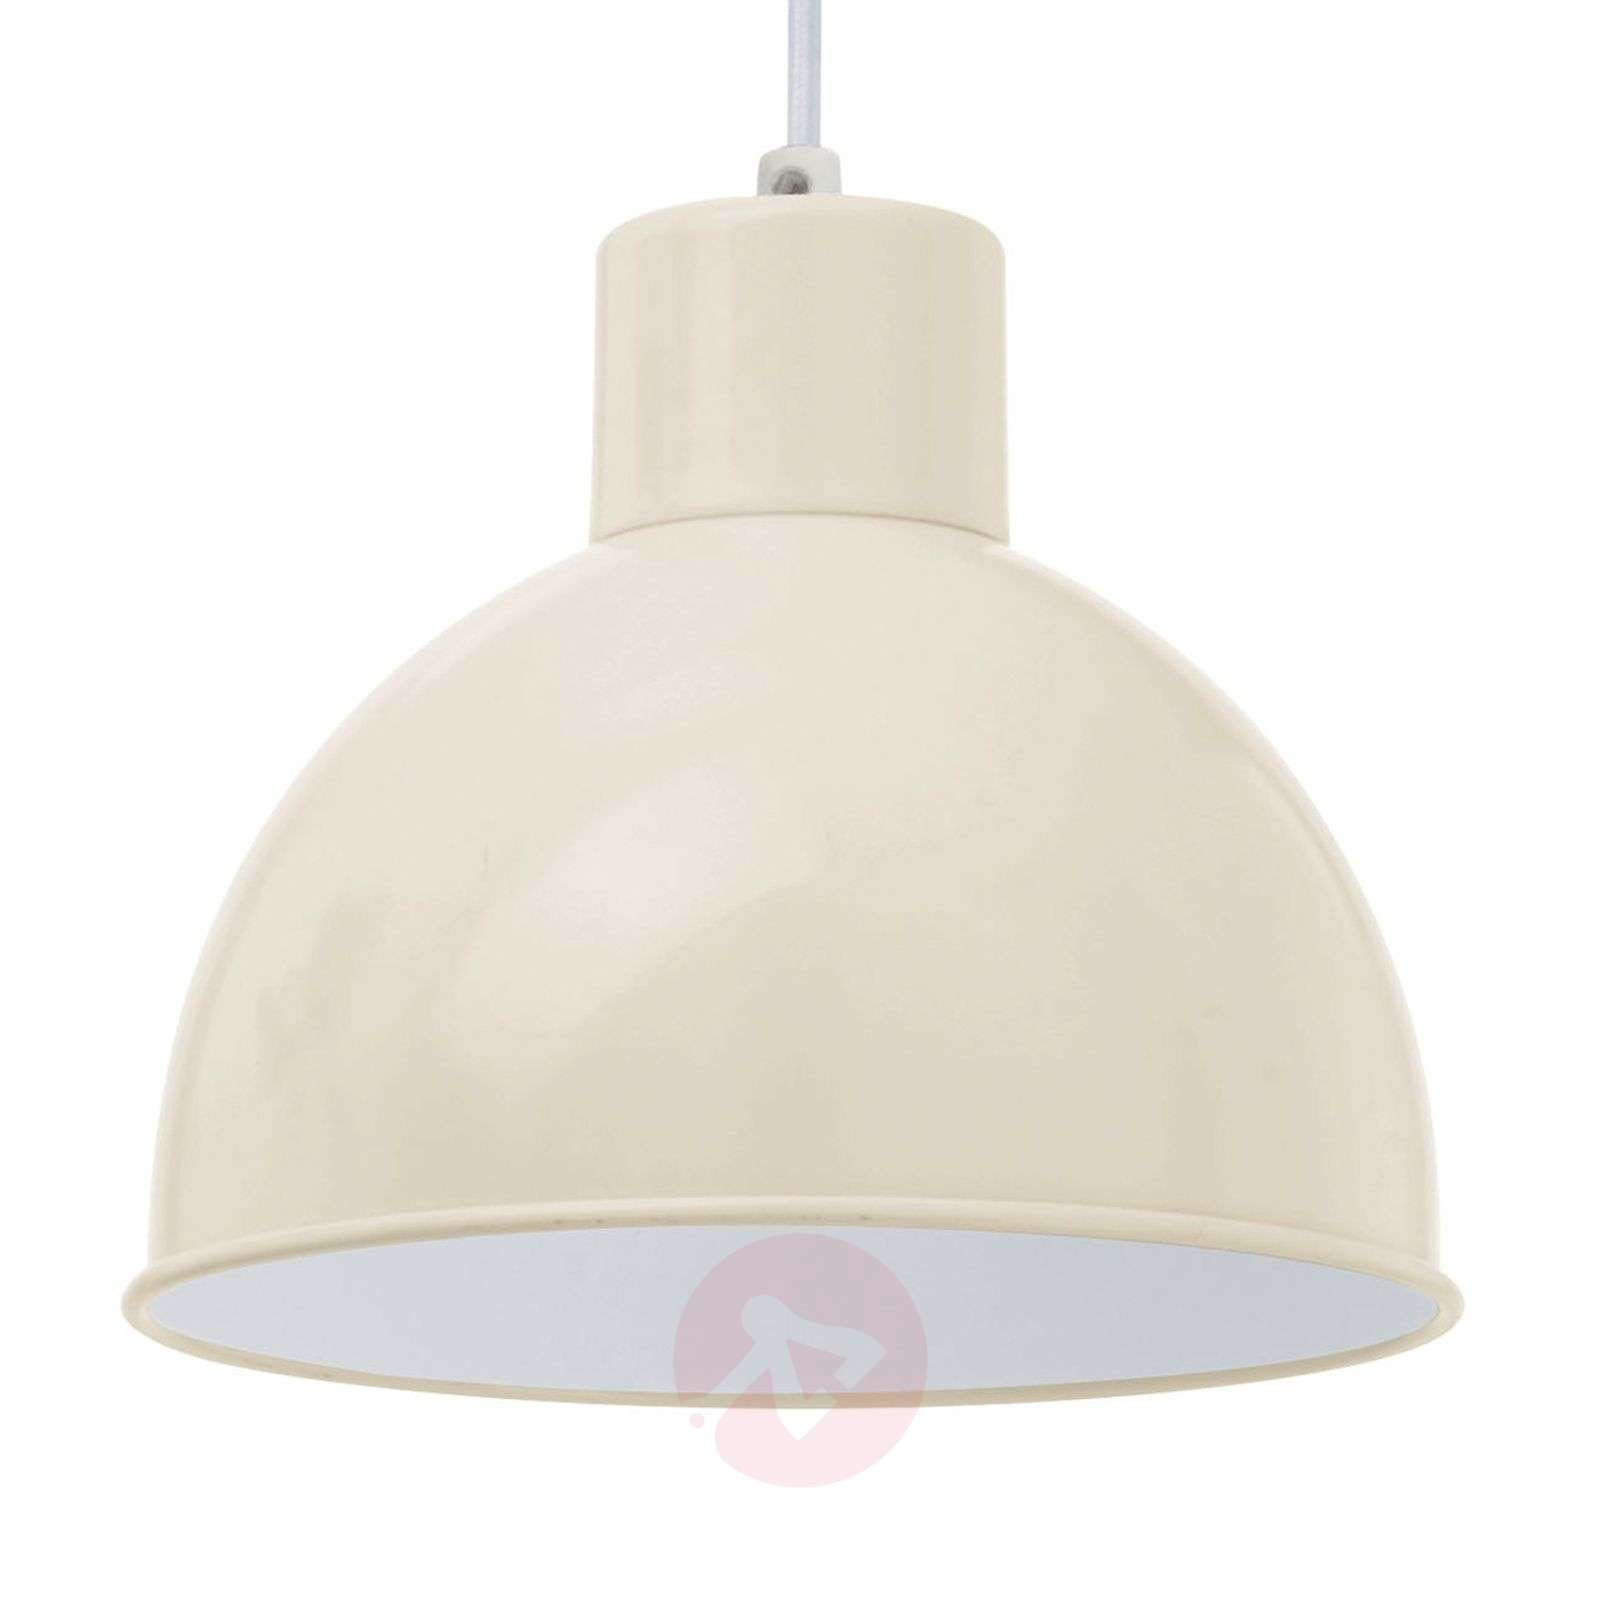 Suspension couleur sable Andrin-3031604-01